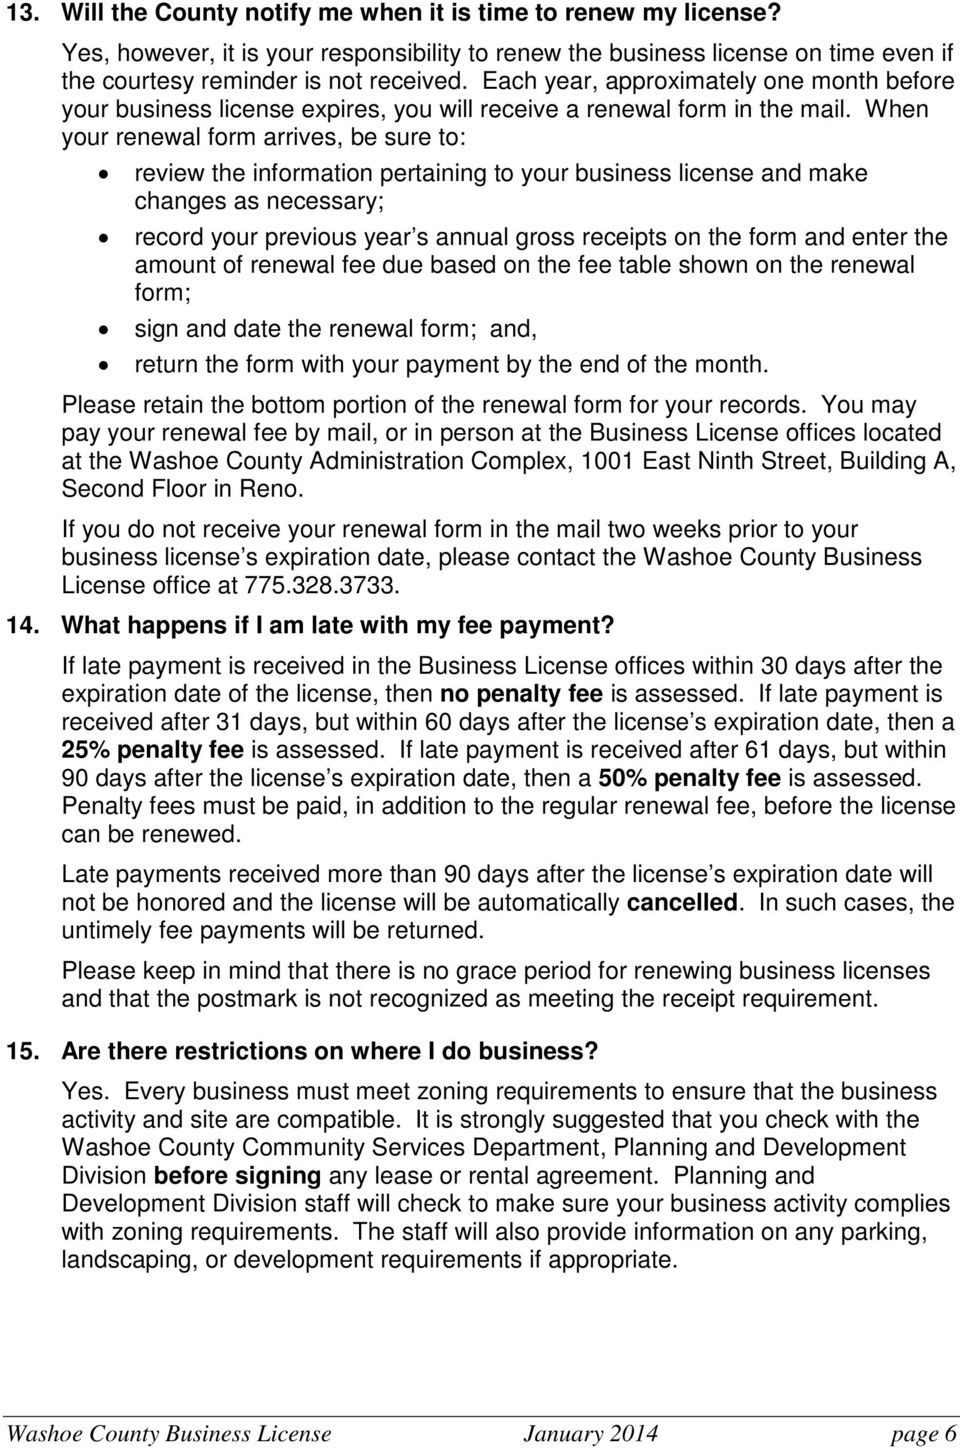 Washoe County Business License Common Questions - PDF